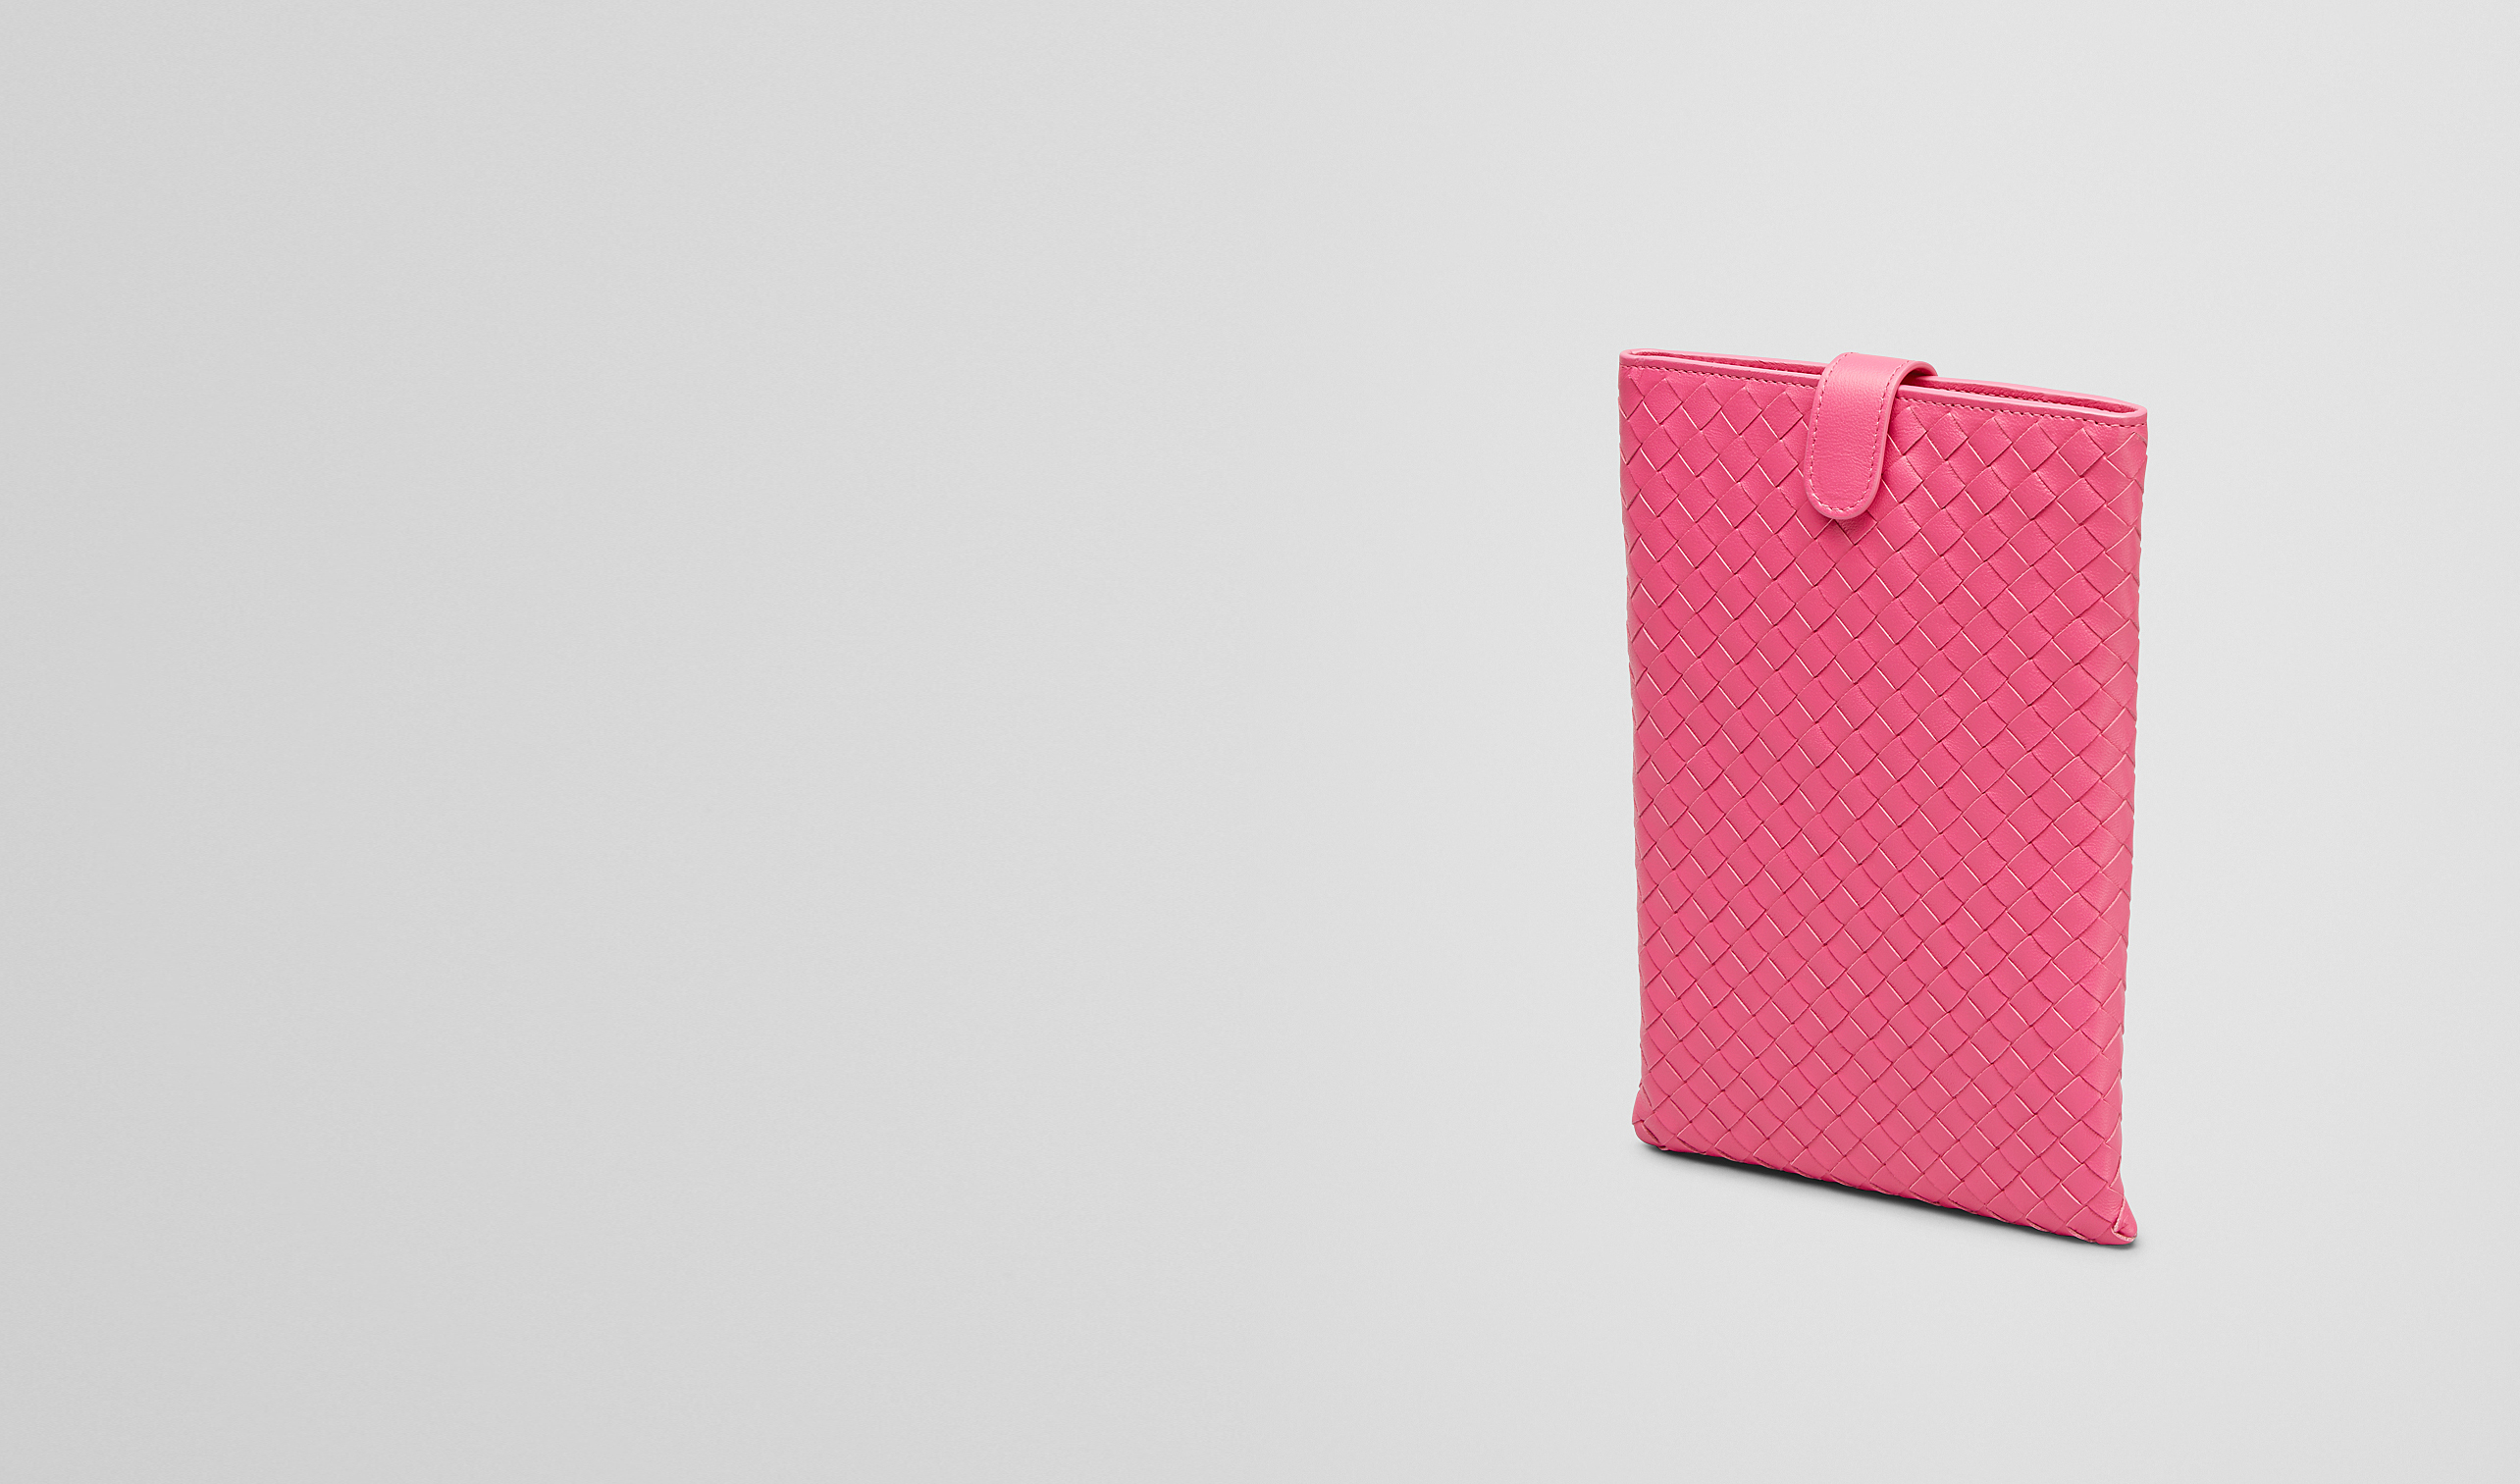 BOTTEGA VENETA Other Leather Accessory E ROSA SHOCK INTRECCIATO NAPPA MINI IPAD CASE pl